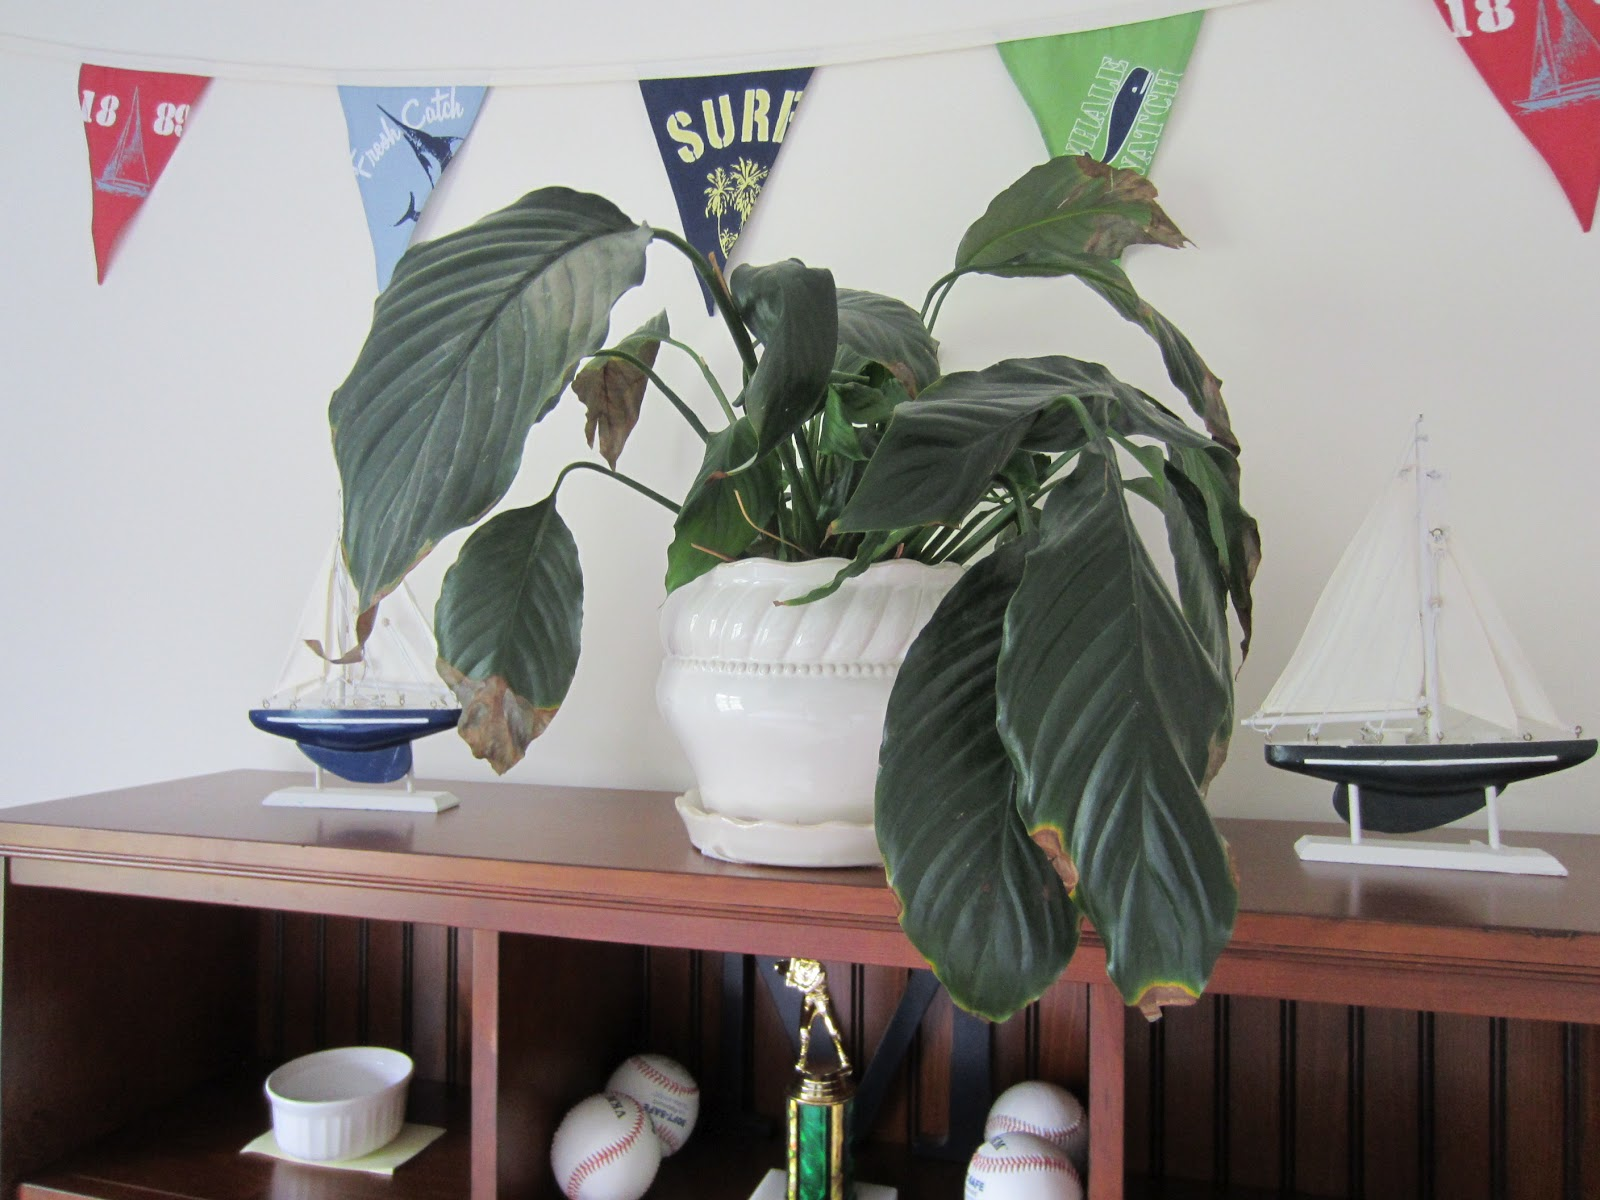 Houseplants such as Spider Plants Philodendron and Peace Lillies #6E473F